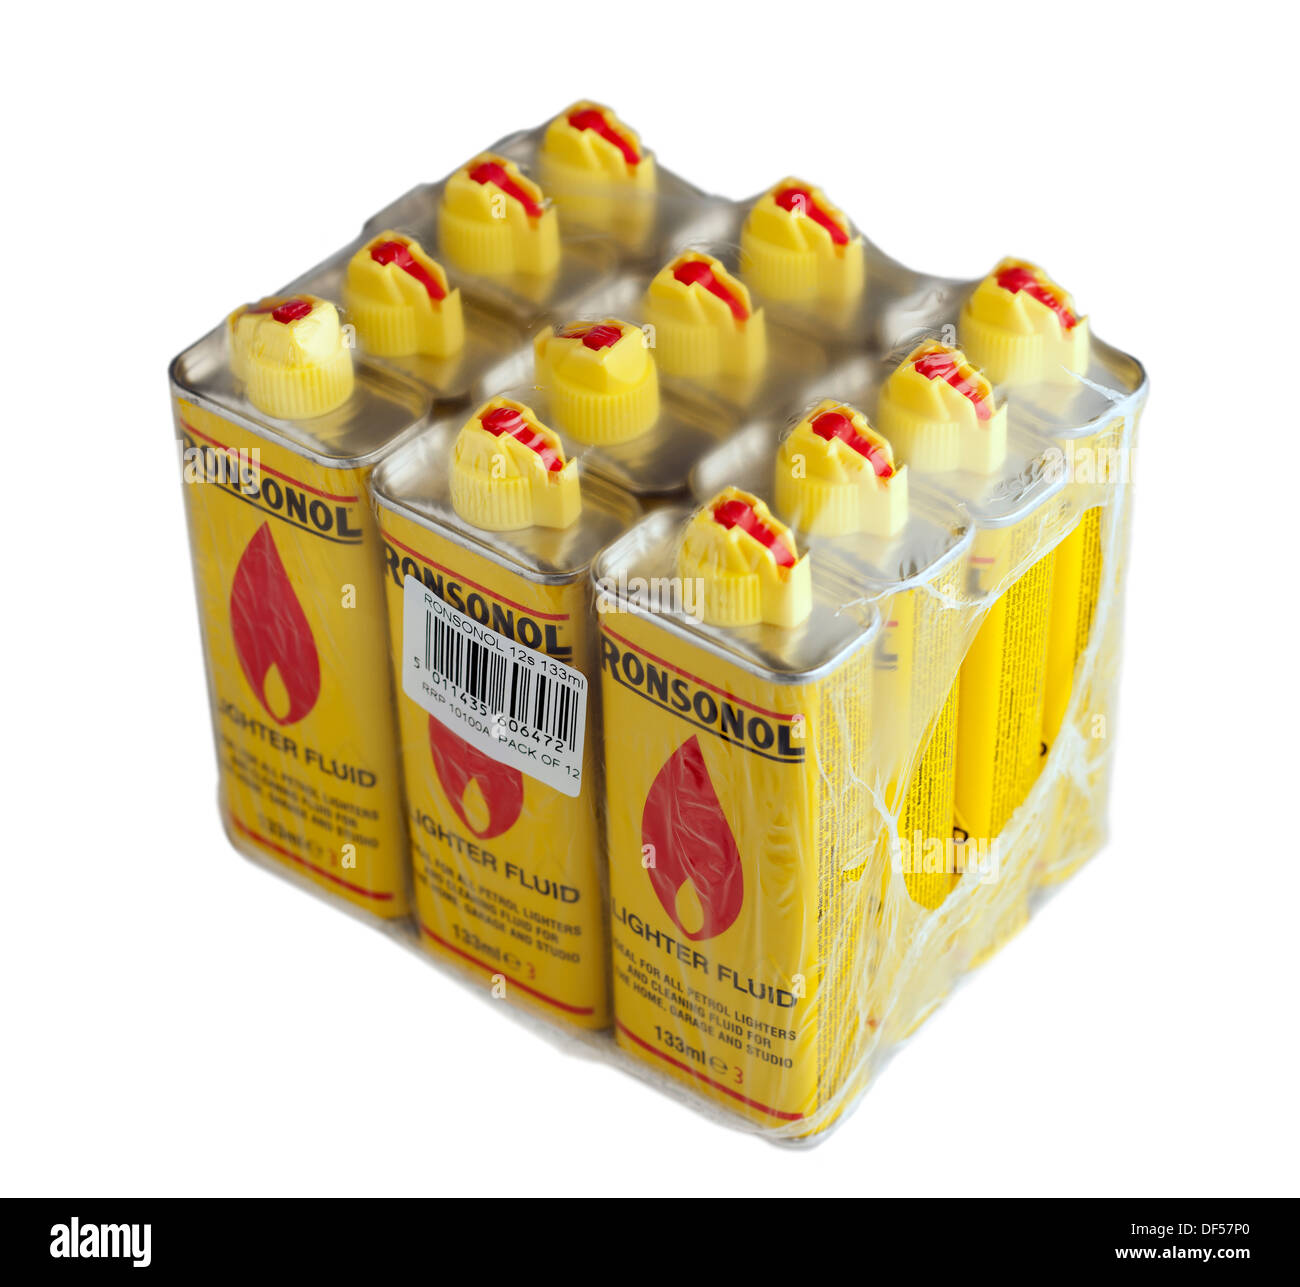 Twelve cans of Ronsonol lighter fluid fuel cellophane wrapped - Stock Image